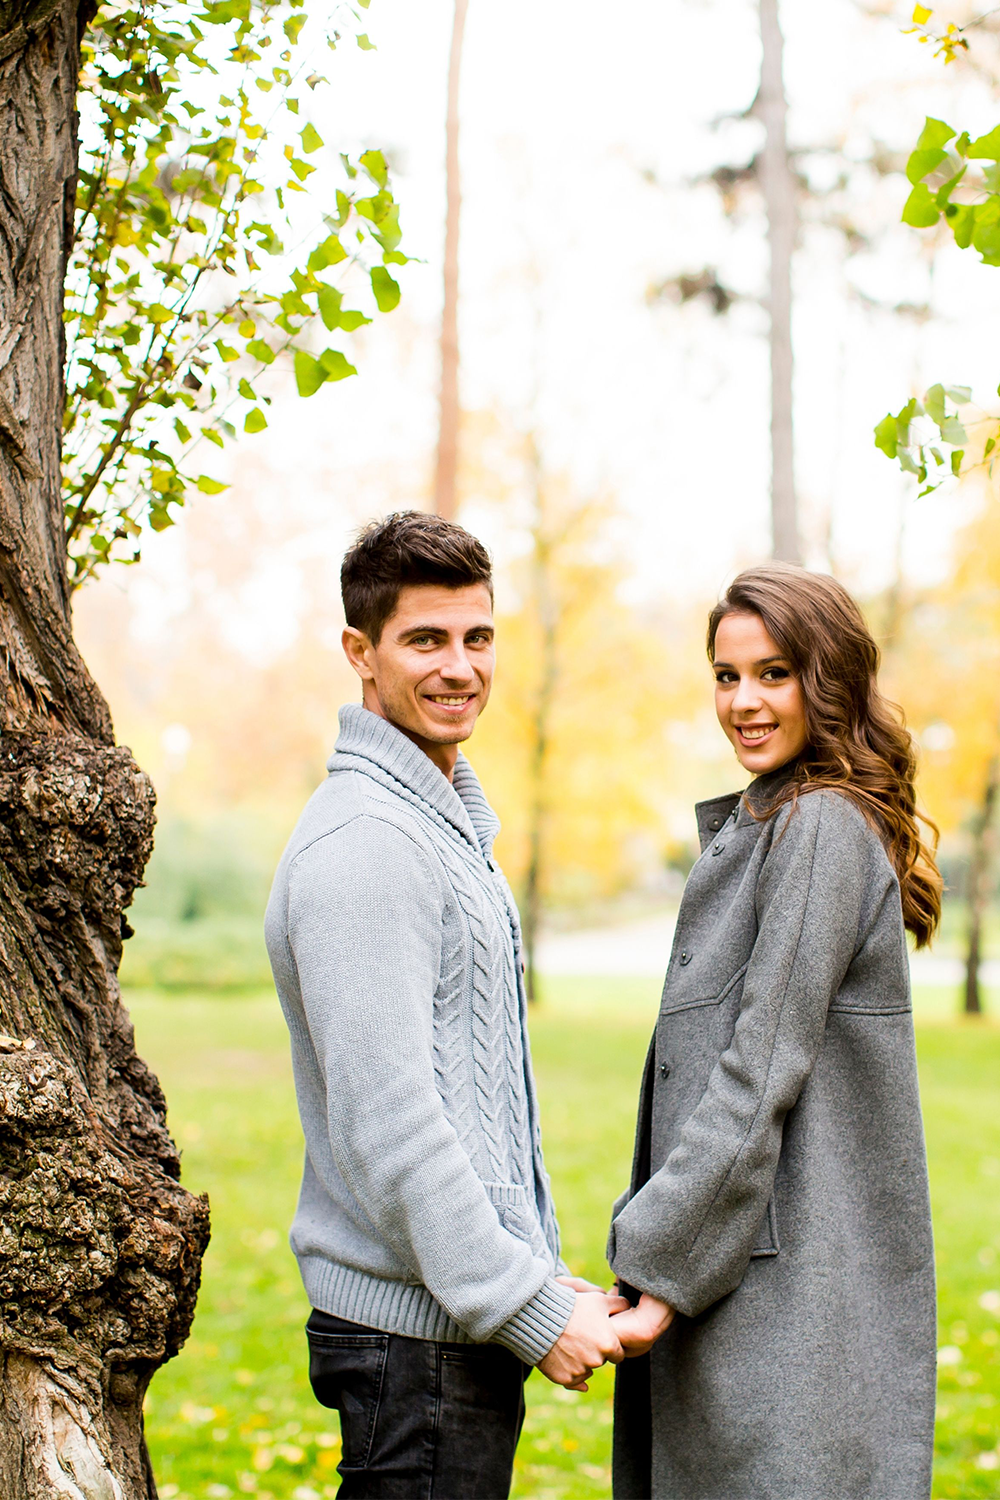 Engagement Photo Ideas For Couples look around